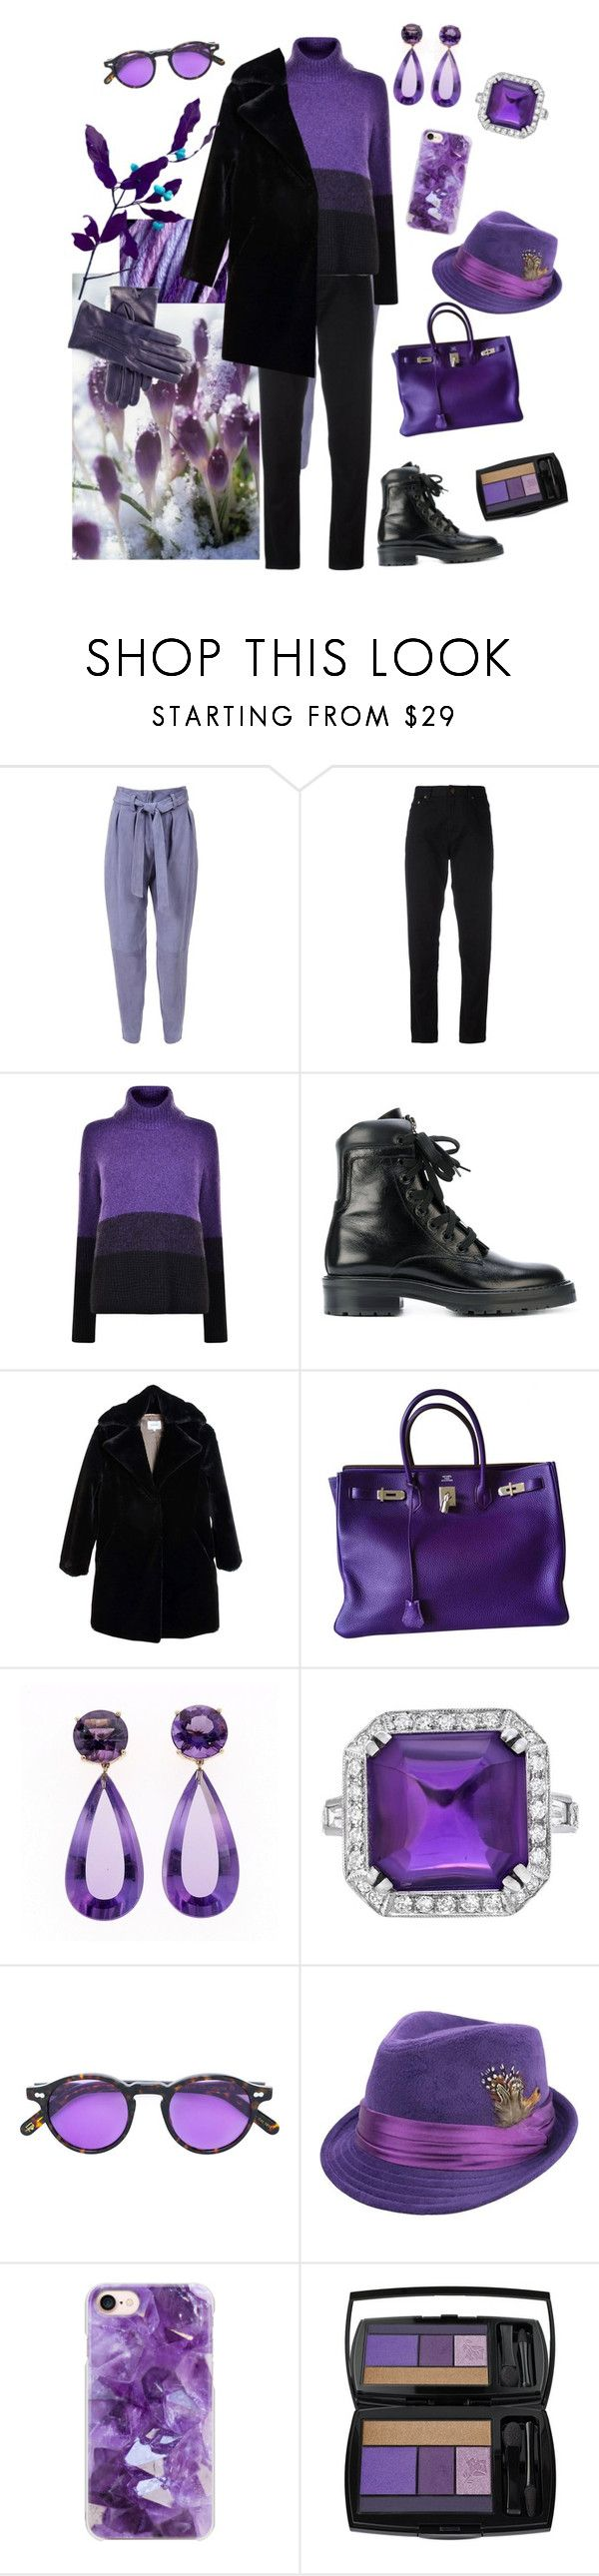 """february style"" by adm76 ❤ liked on Polyvore featuring Yves Saint Laurent, BOSS Orange, Nanushka, Hermès, Moscot, Casetify, Lancôme and Black"